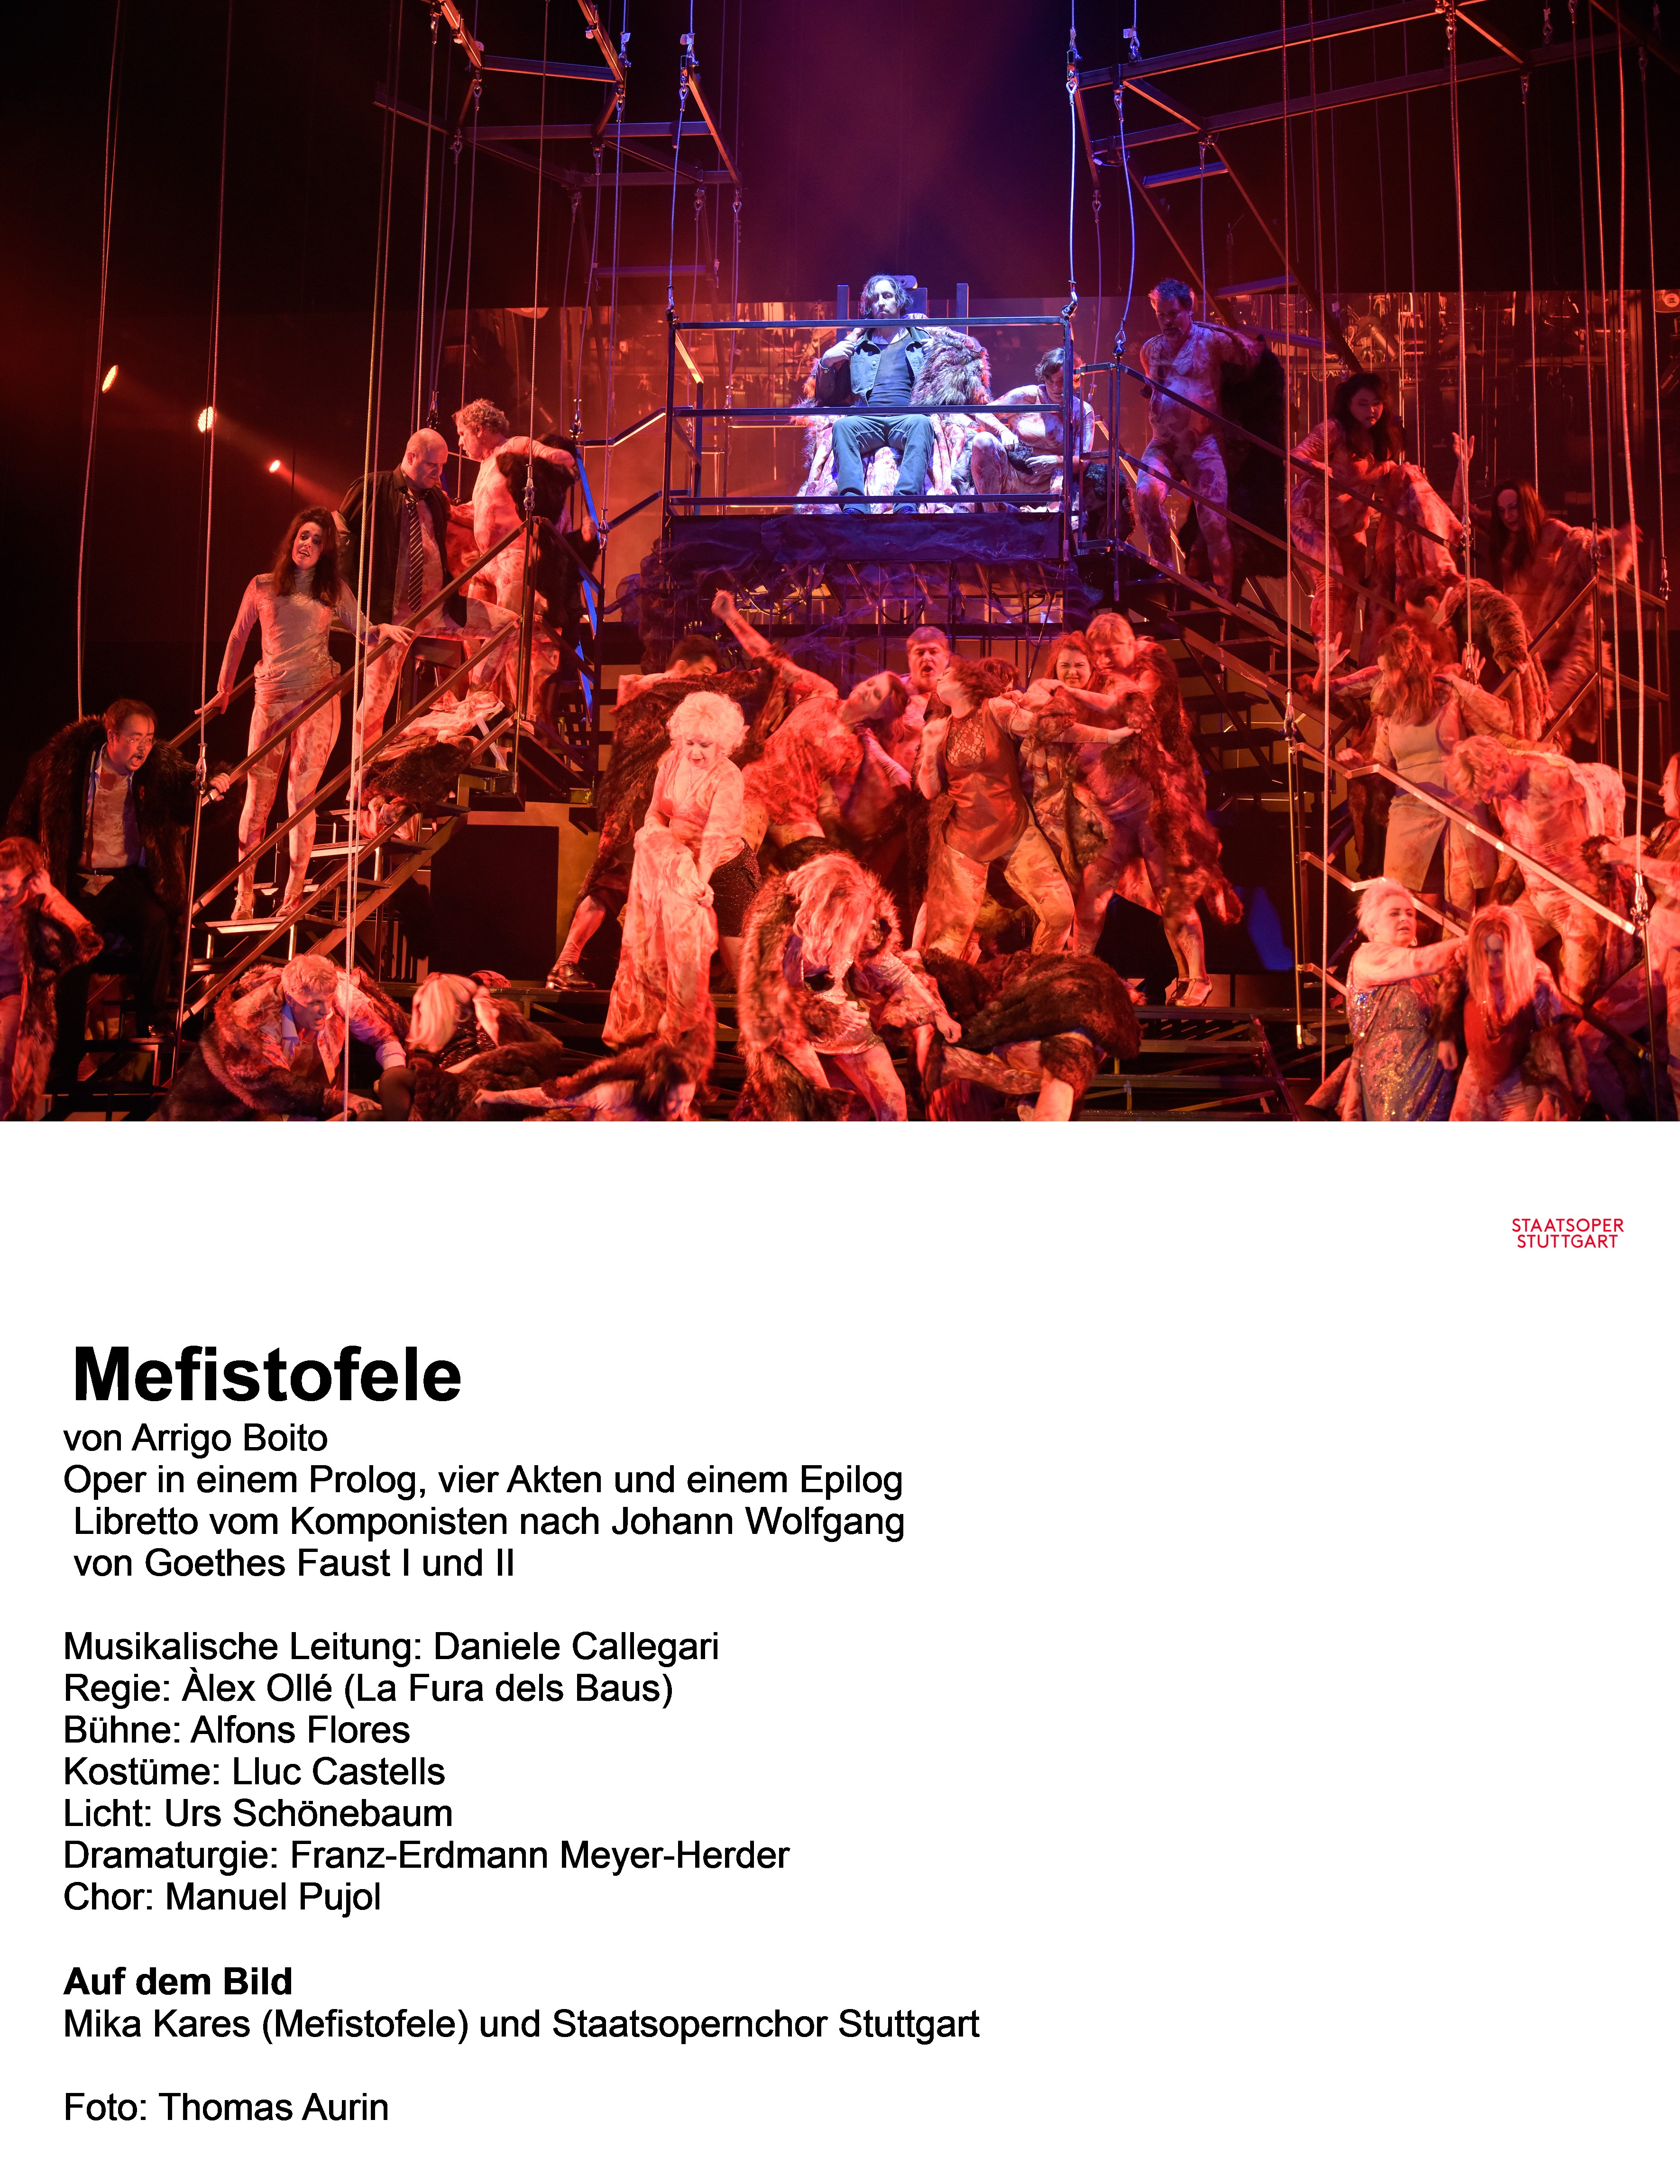 Sonic Power and Imposing Visuals: Mefistofele at the Staatsoper